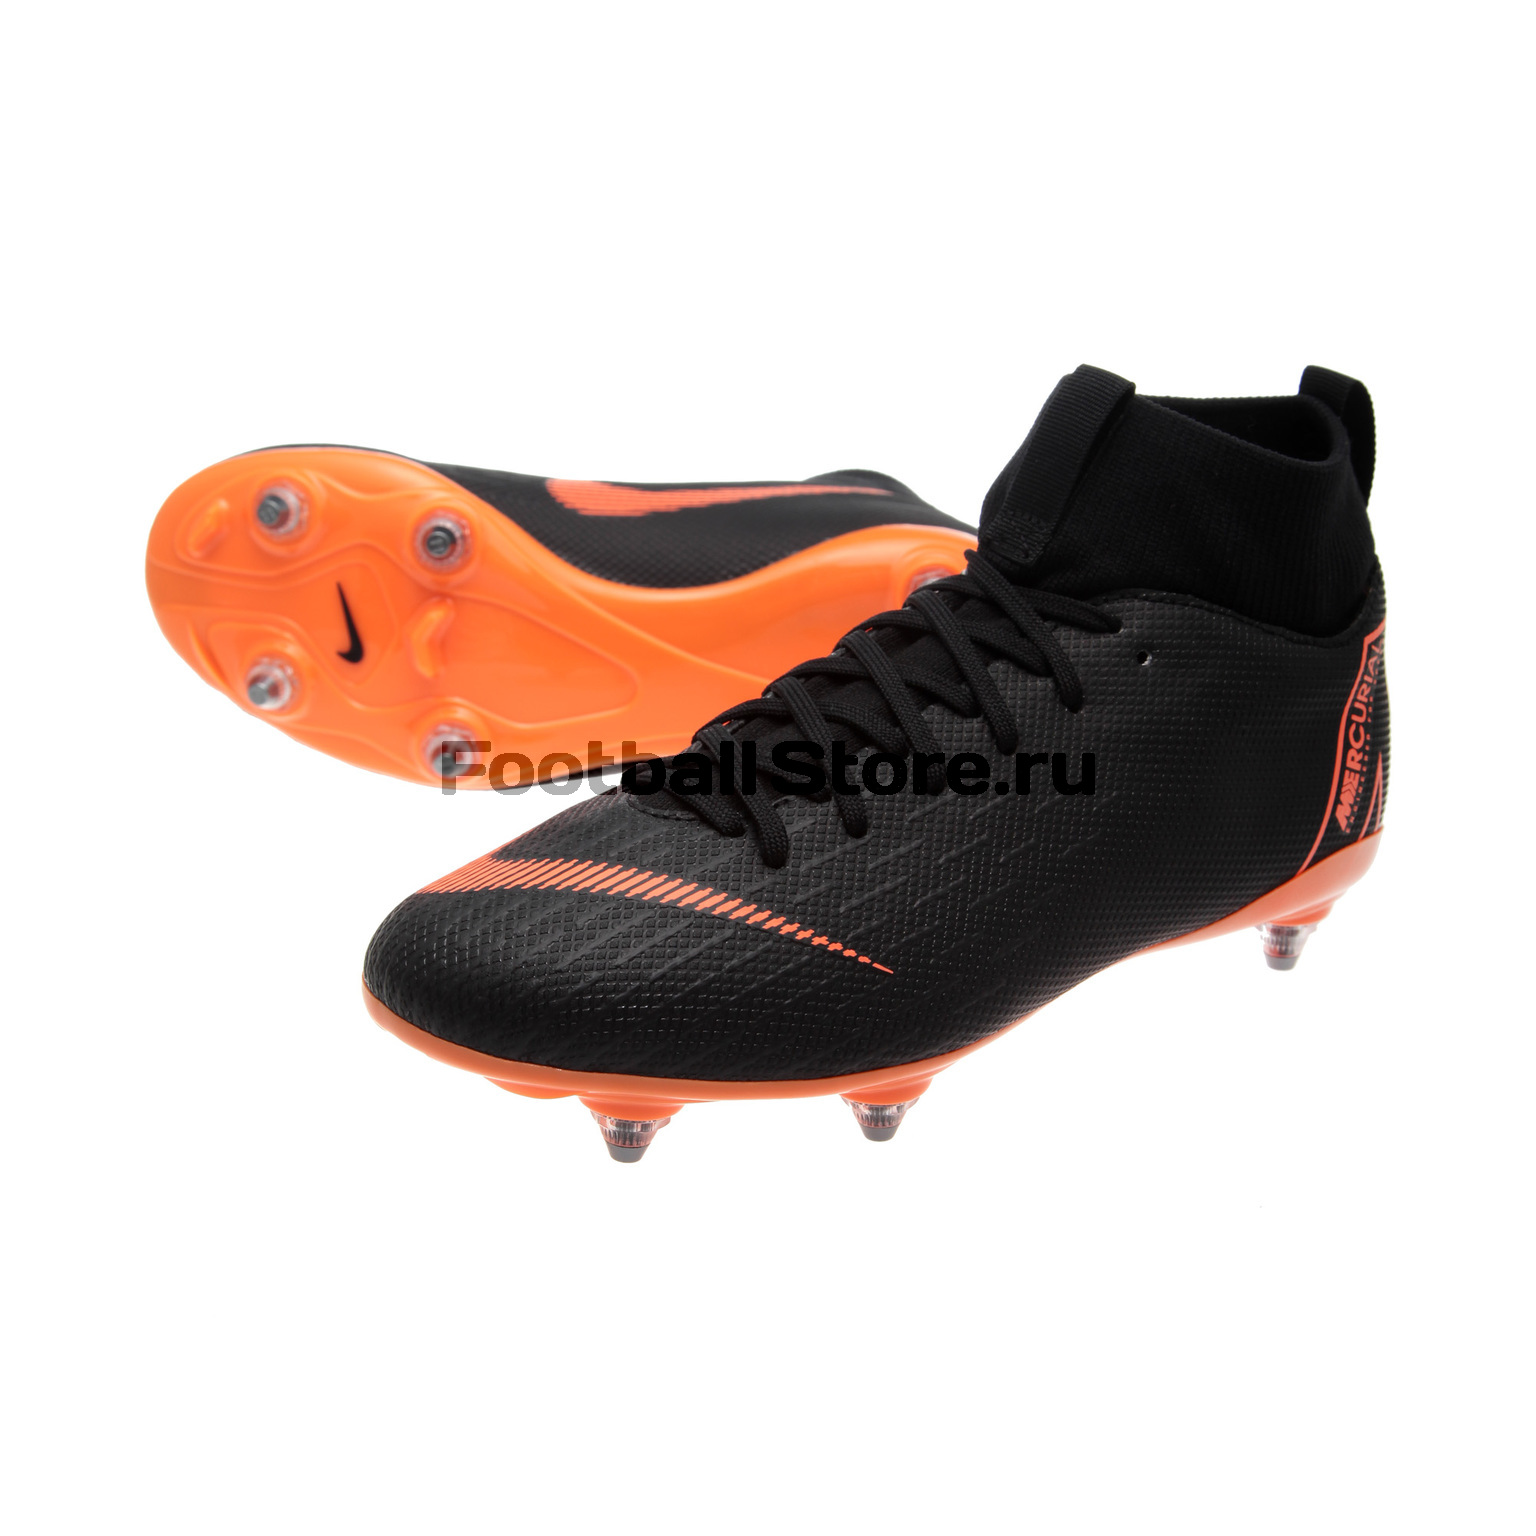 Бутсы Nike JR Superfly 6 Academy GS SG-Pro AH7338-081 детские бутсы nike бутсы nike jr phantom 3 elite df fg ah7292 081